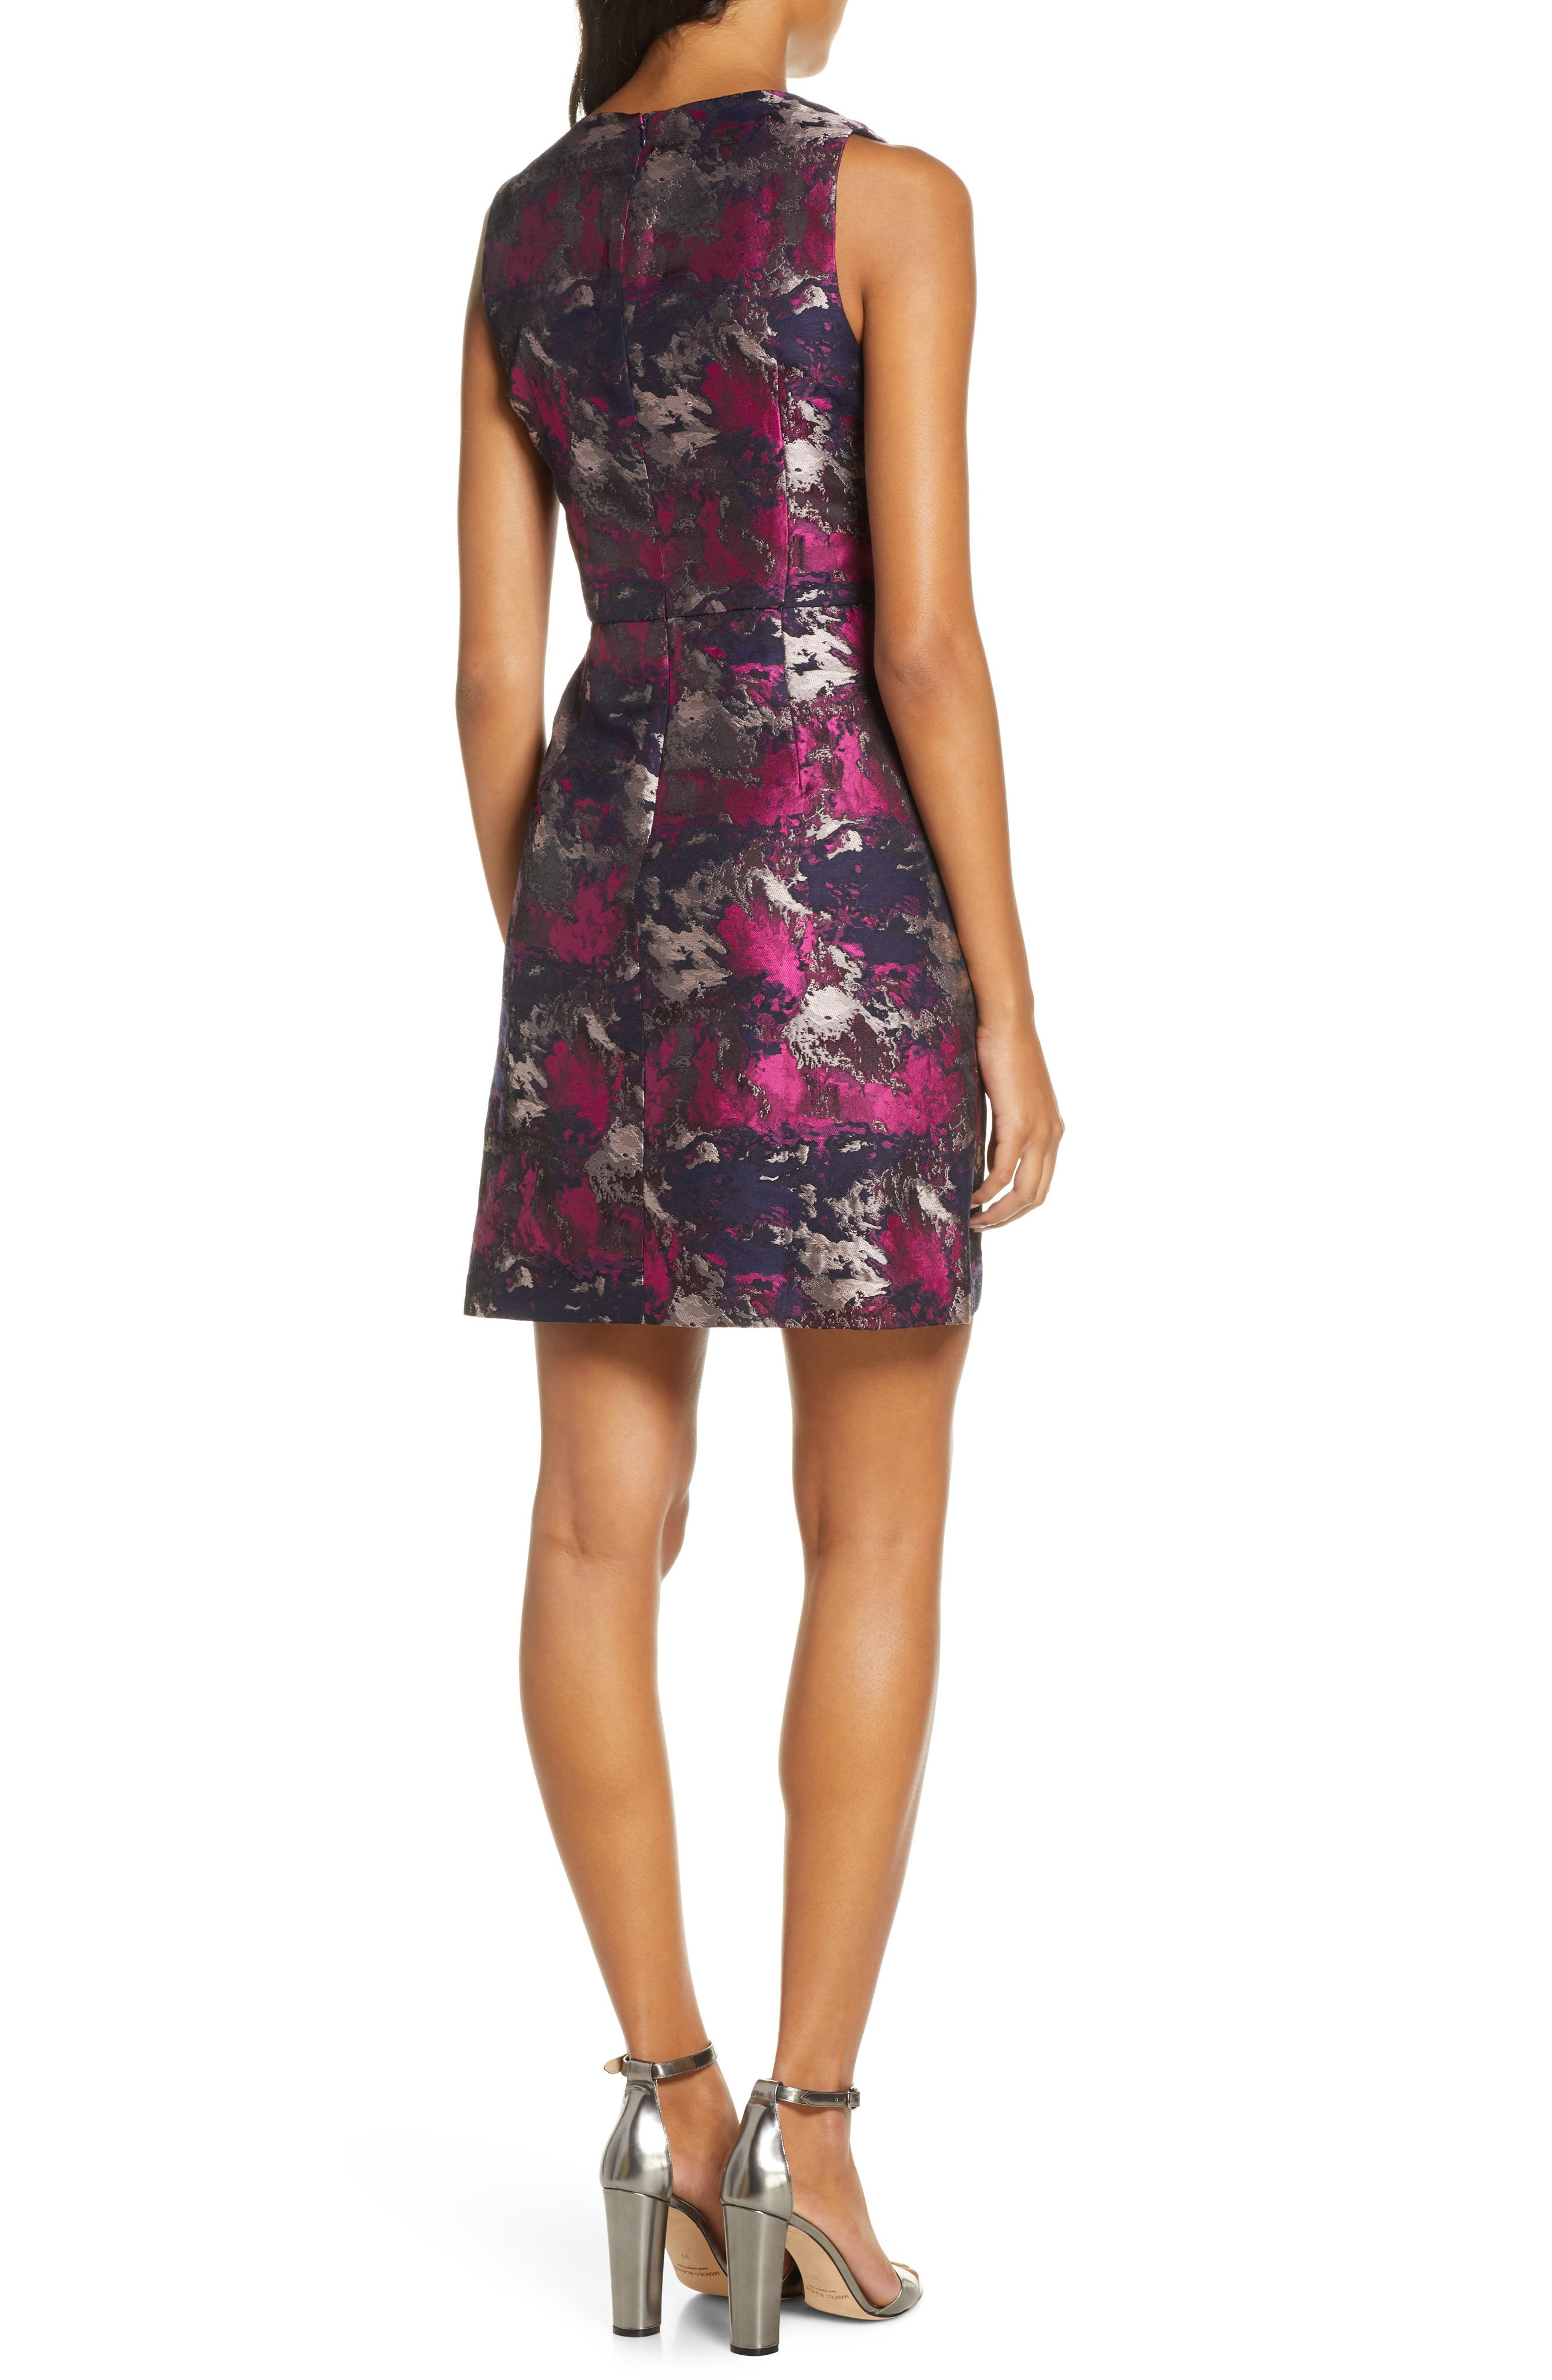 Vince Camuto Dresses Metallic Asymmetrical Peplum Sheath Dress